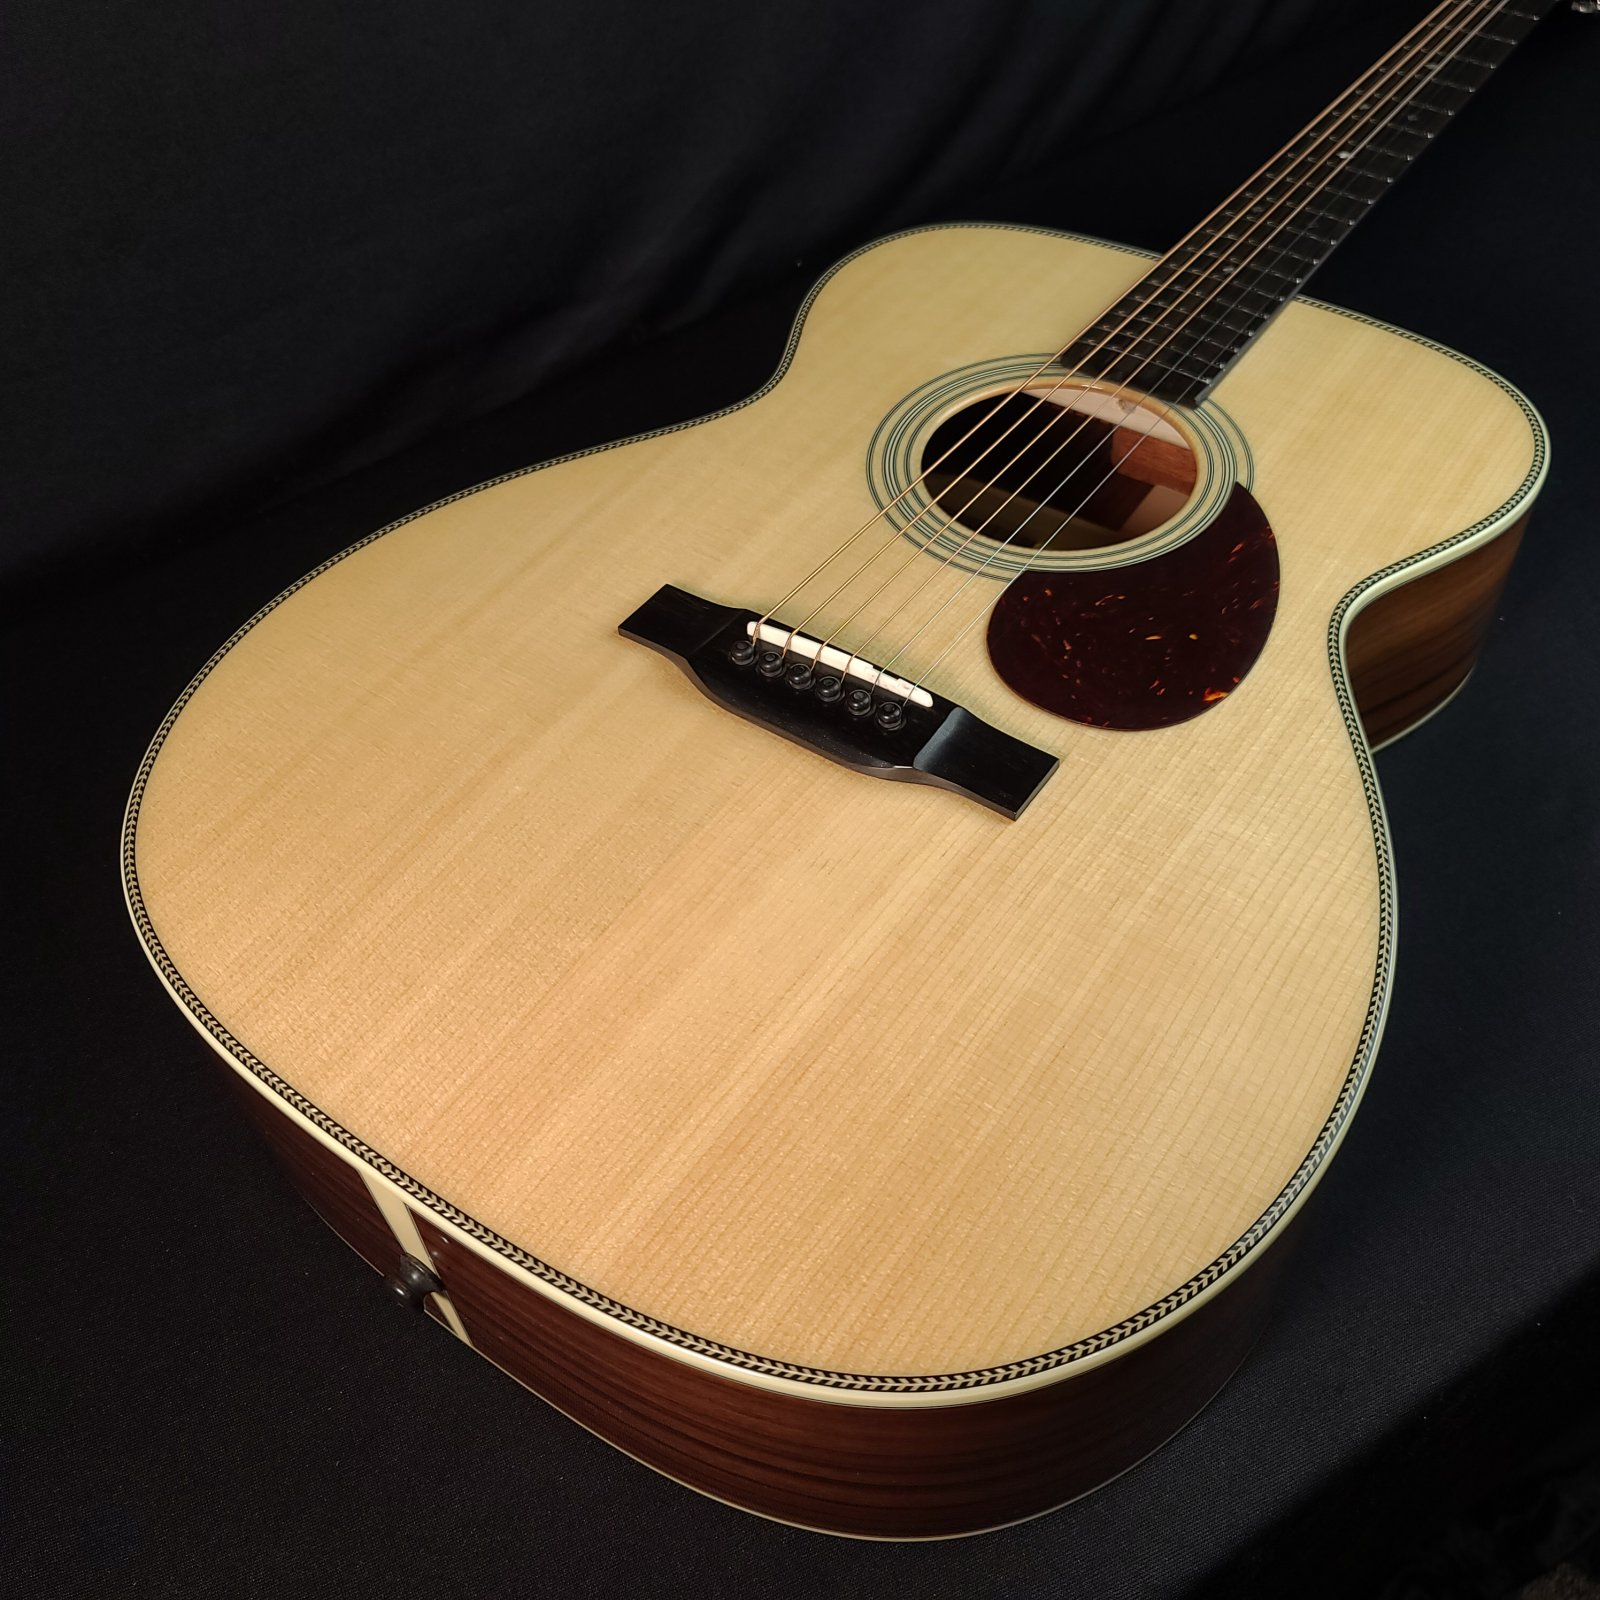 Eastman E8OM Orchestra Natural Acoustic Guitar With Case 5268